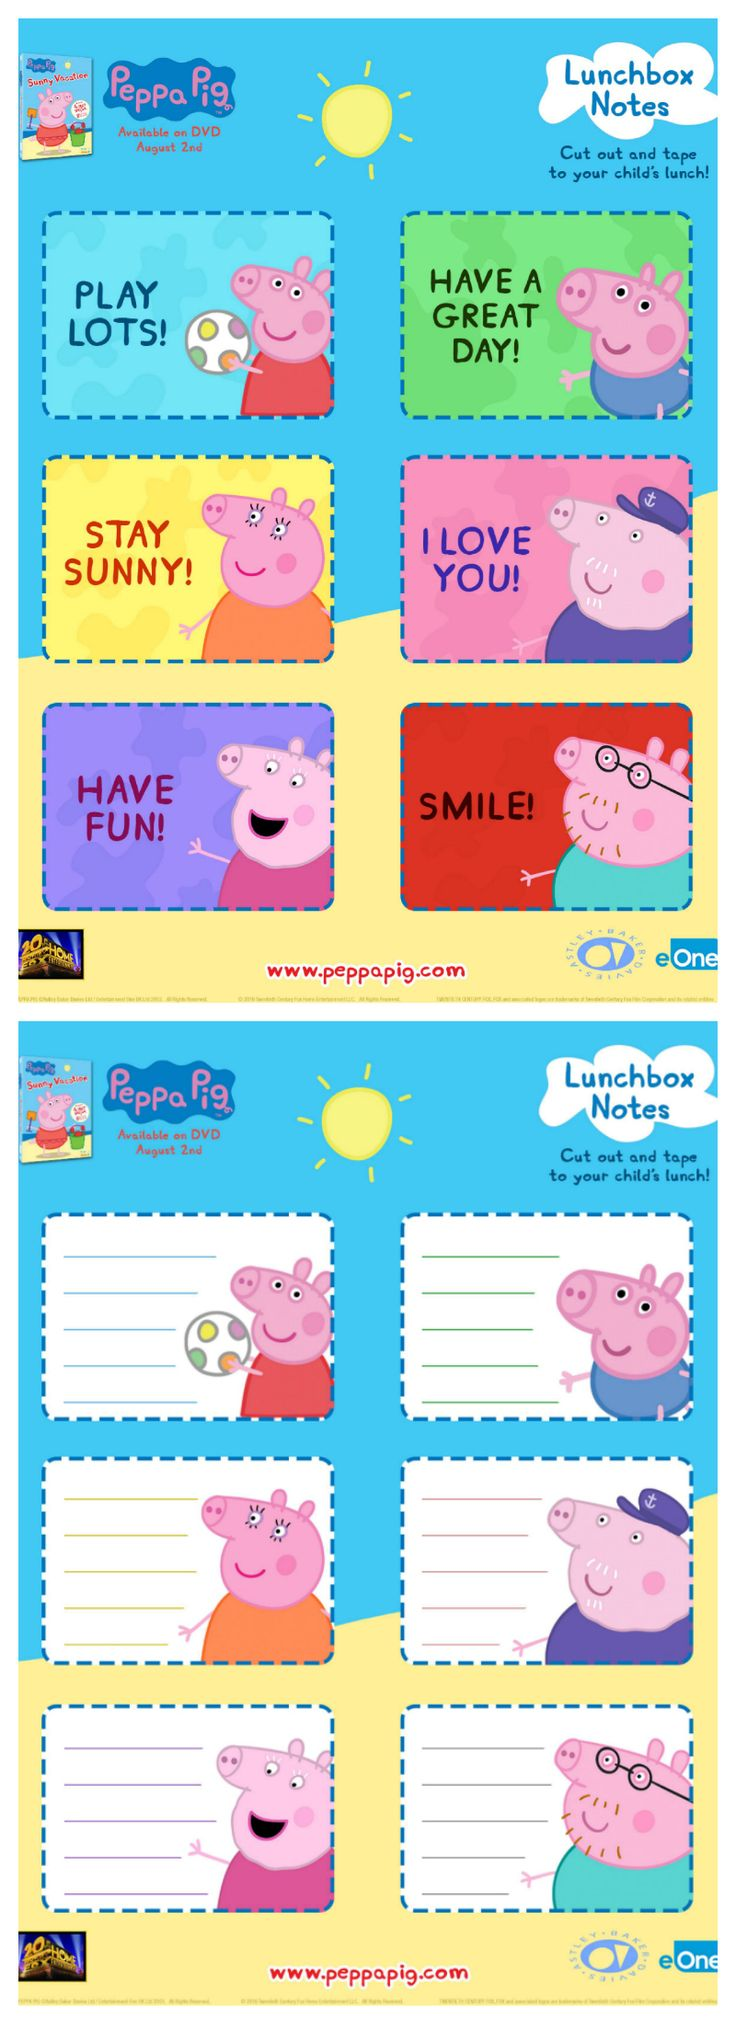 Free Peppa Pig Lunch Box Notes